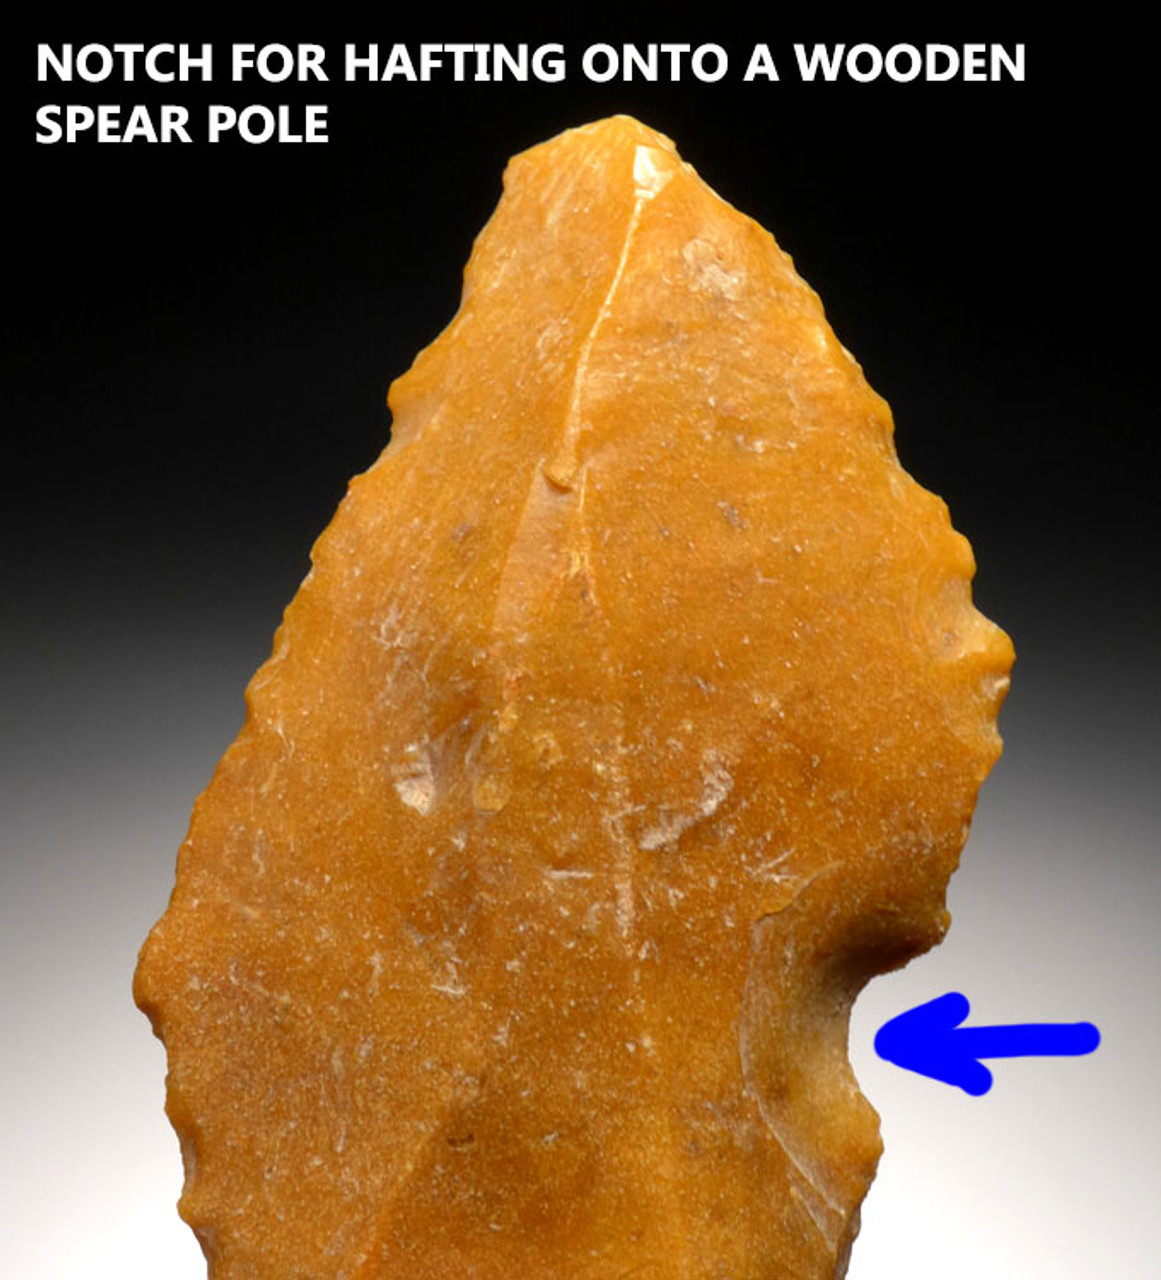 M353 - RARE FINEST LARGE NEANDERTHAL MOUSTERIAN POINT SPEARHEAD IN GOLDEN FLINT